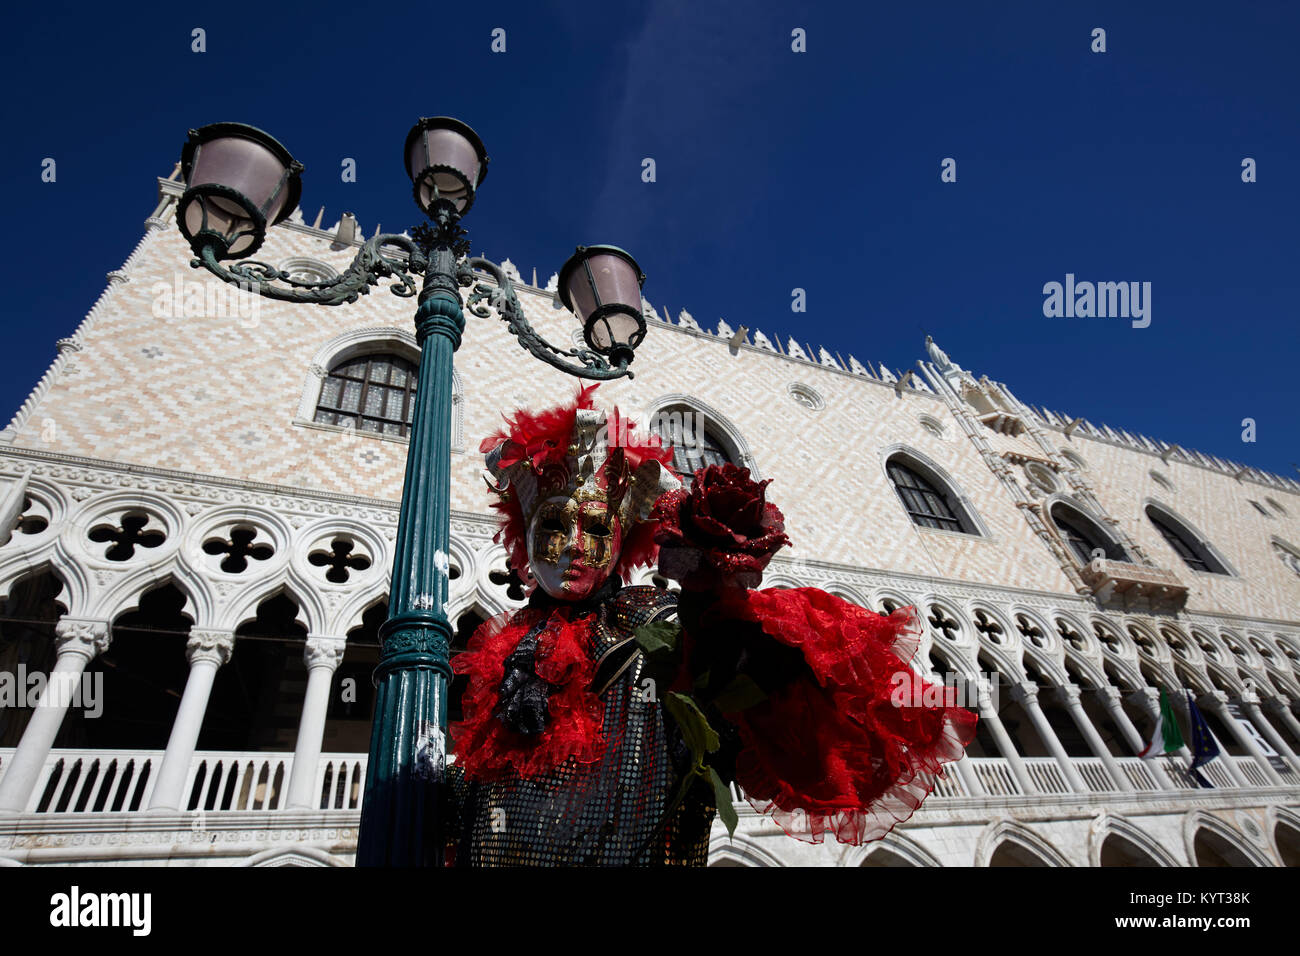 Traditional Venetian mask at Carnival 2017, Venice, Italy - Stock Image